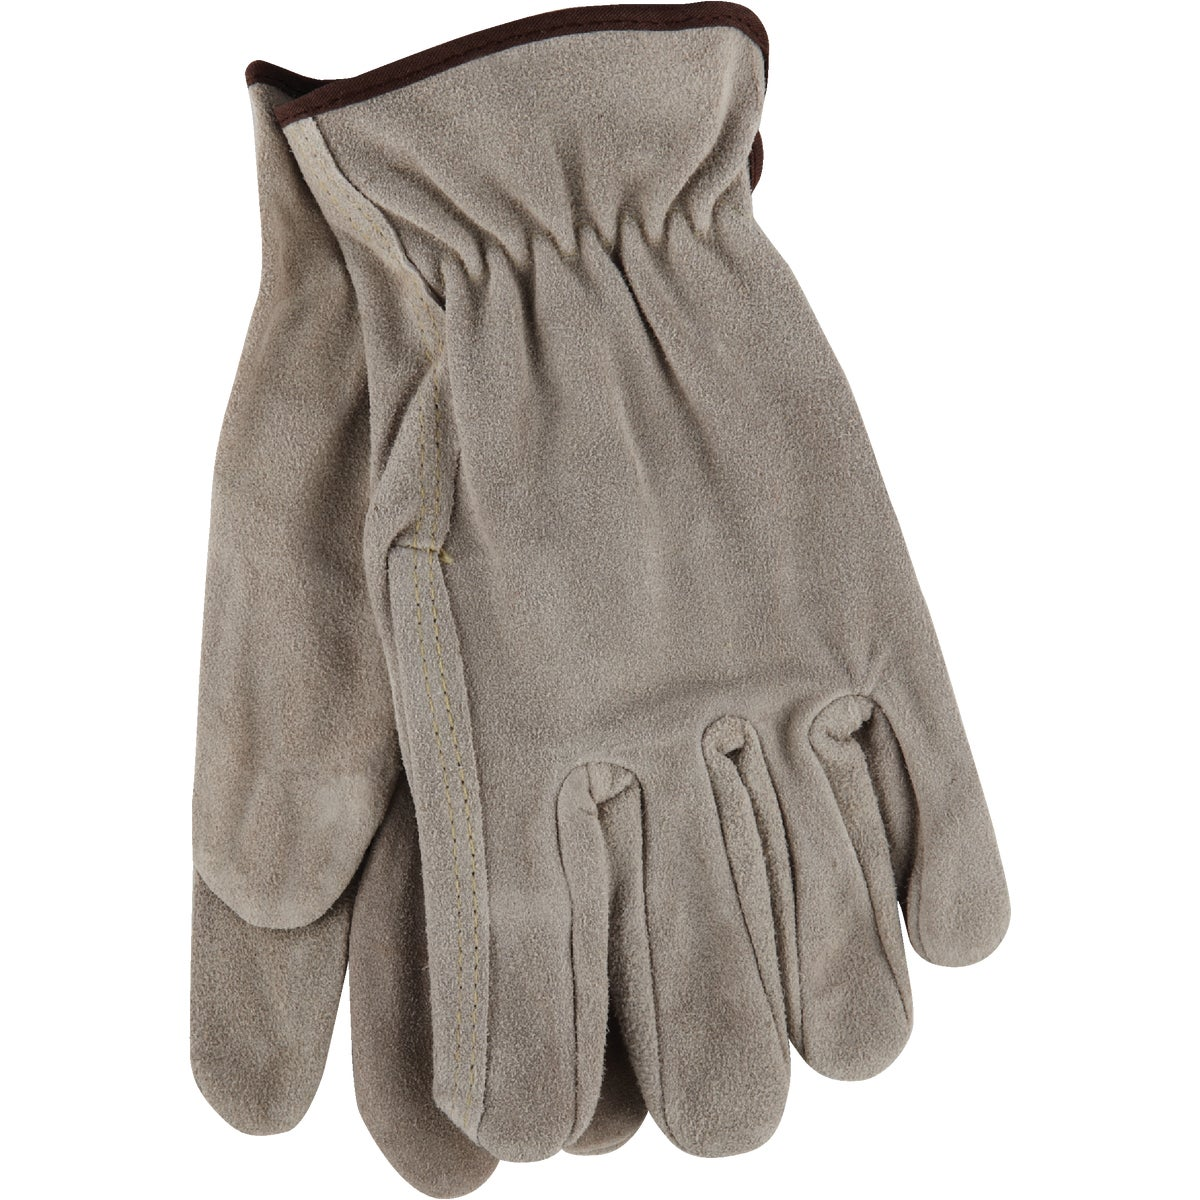 MED SUEDE LEATHER GLOVE